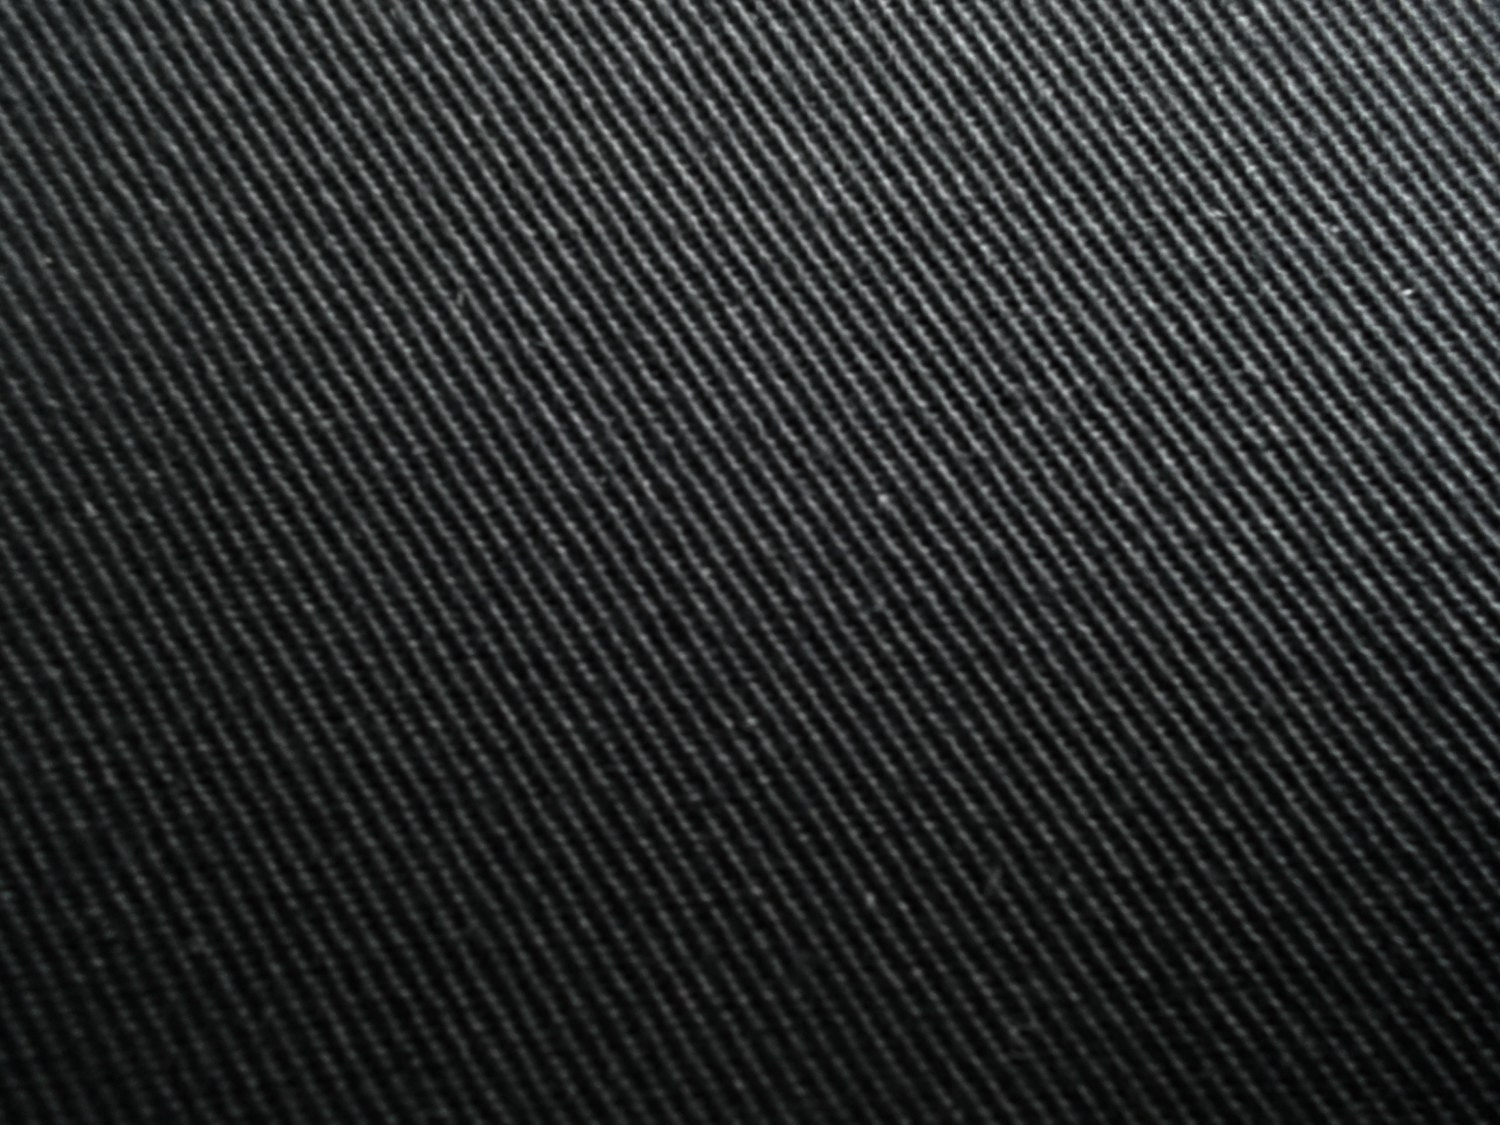 Made of % cotton and available in a selection of neutral colors, this solid cotton twill fabric is perfect to create stylish formal wear like coats, jackets, skirts, pants and work clothes. You can use it alone, or with embellishments or embroidery.